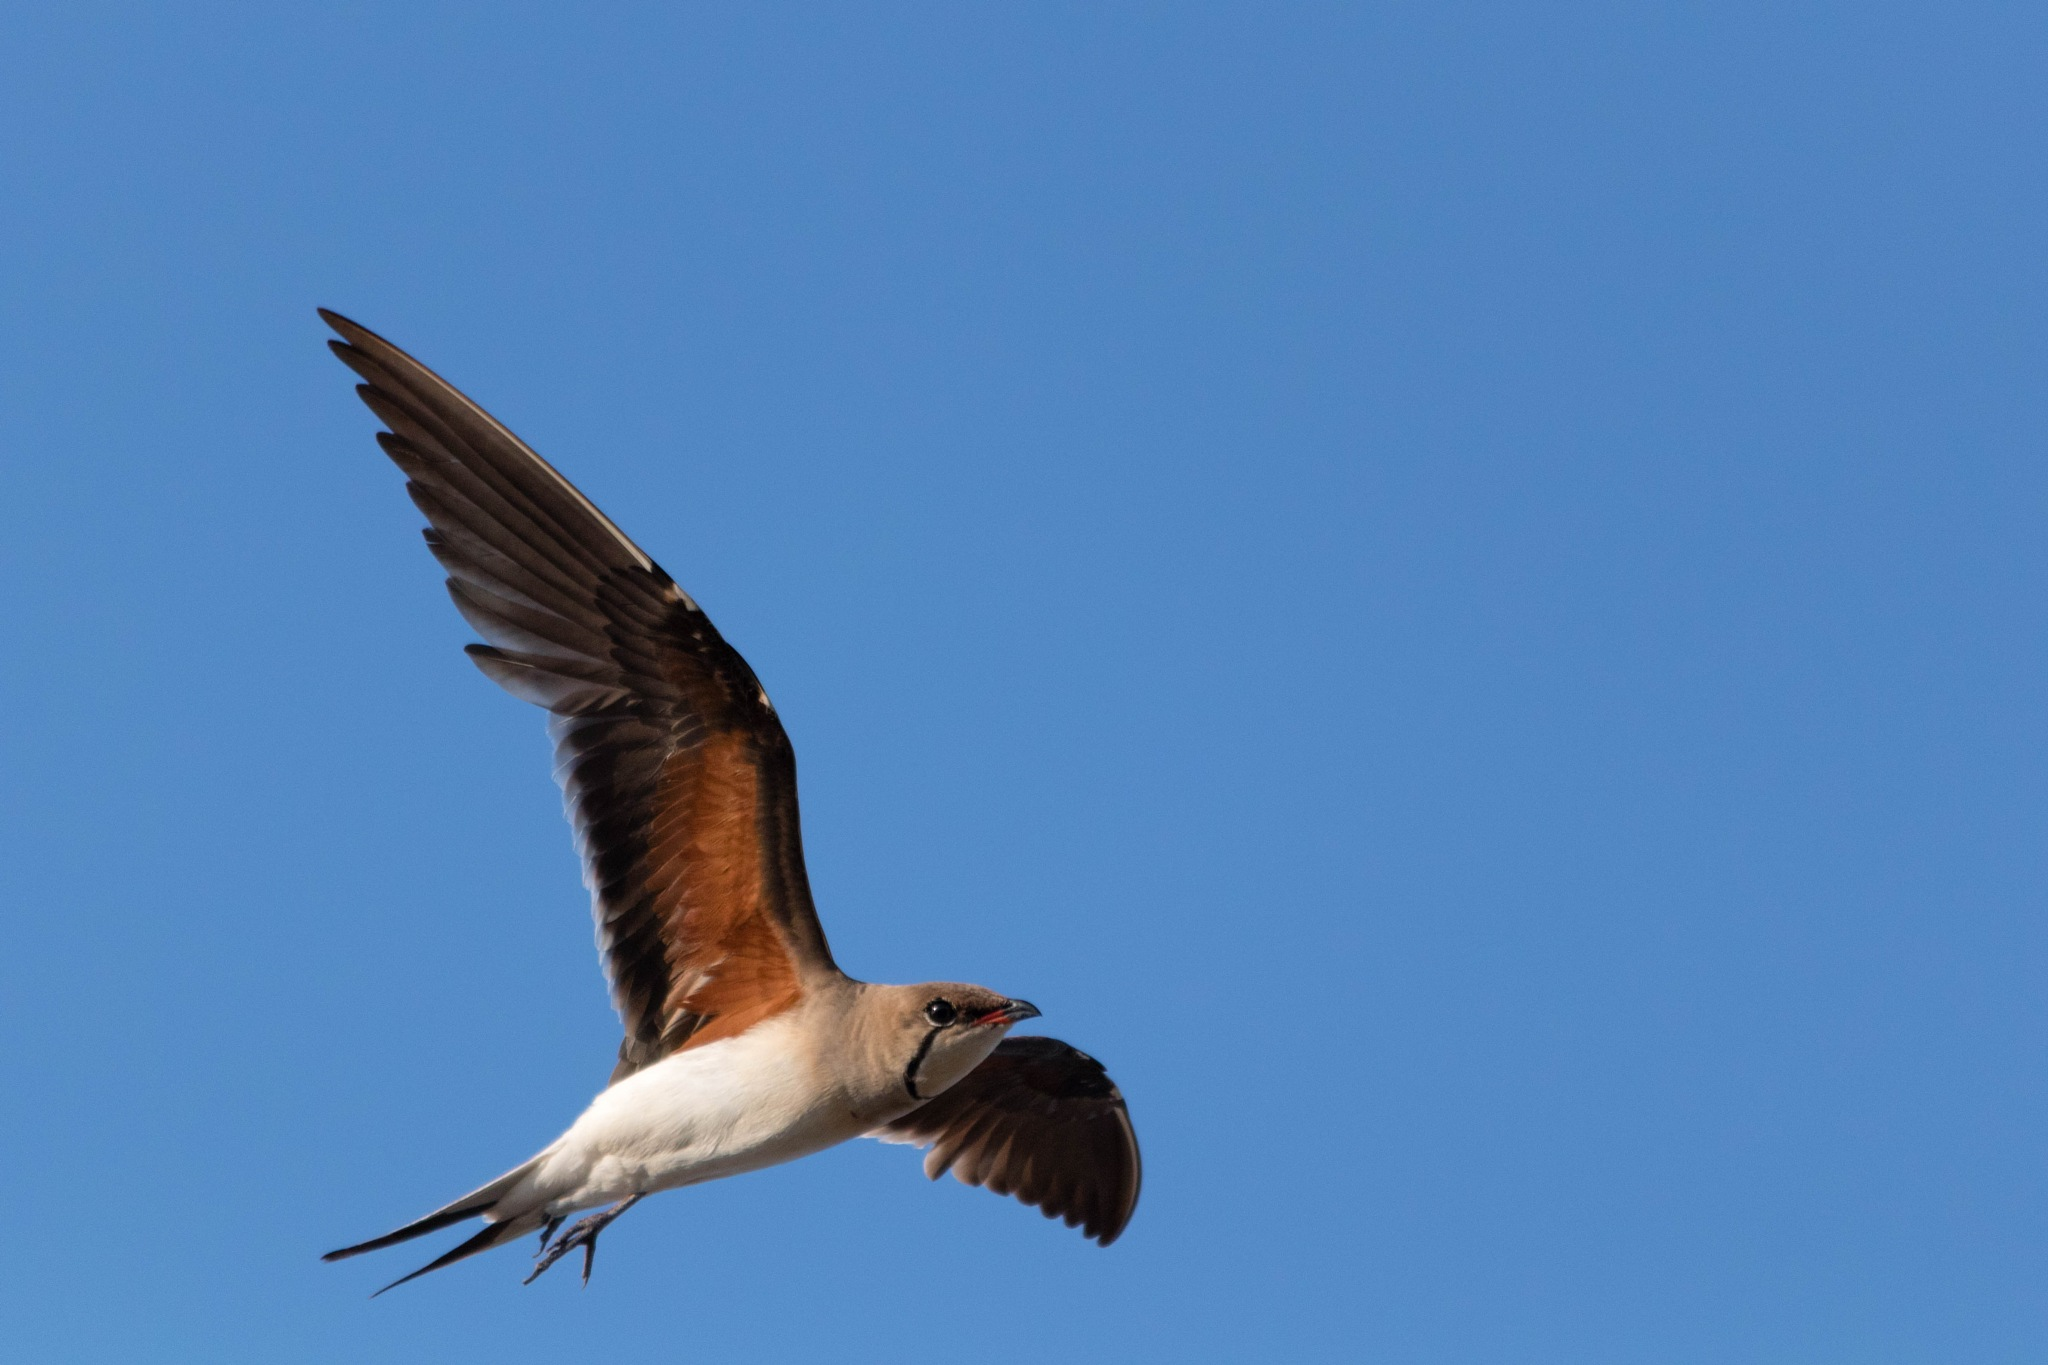 Collared Pratincole in flight by Andrea Prestileo